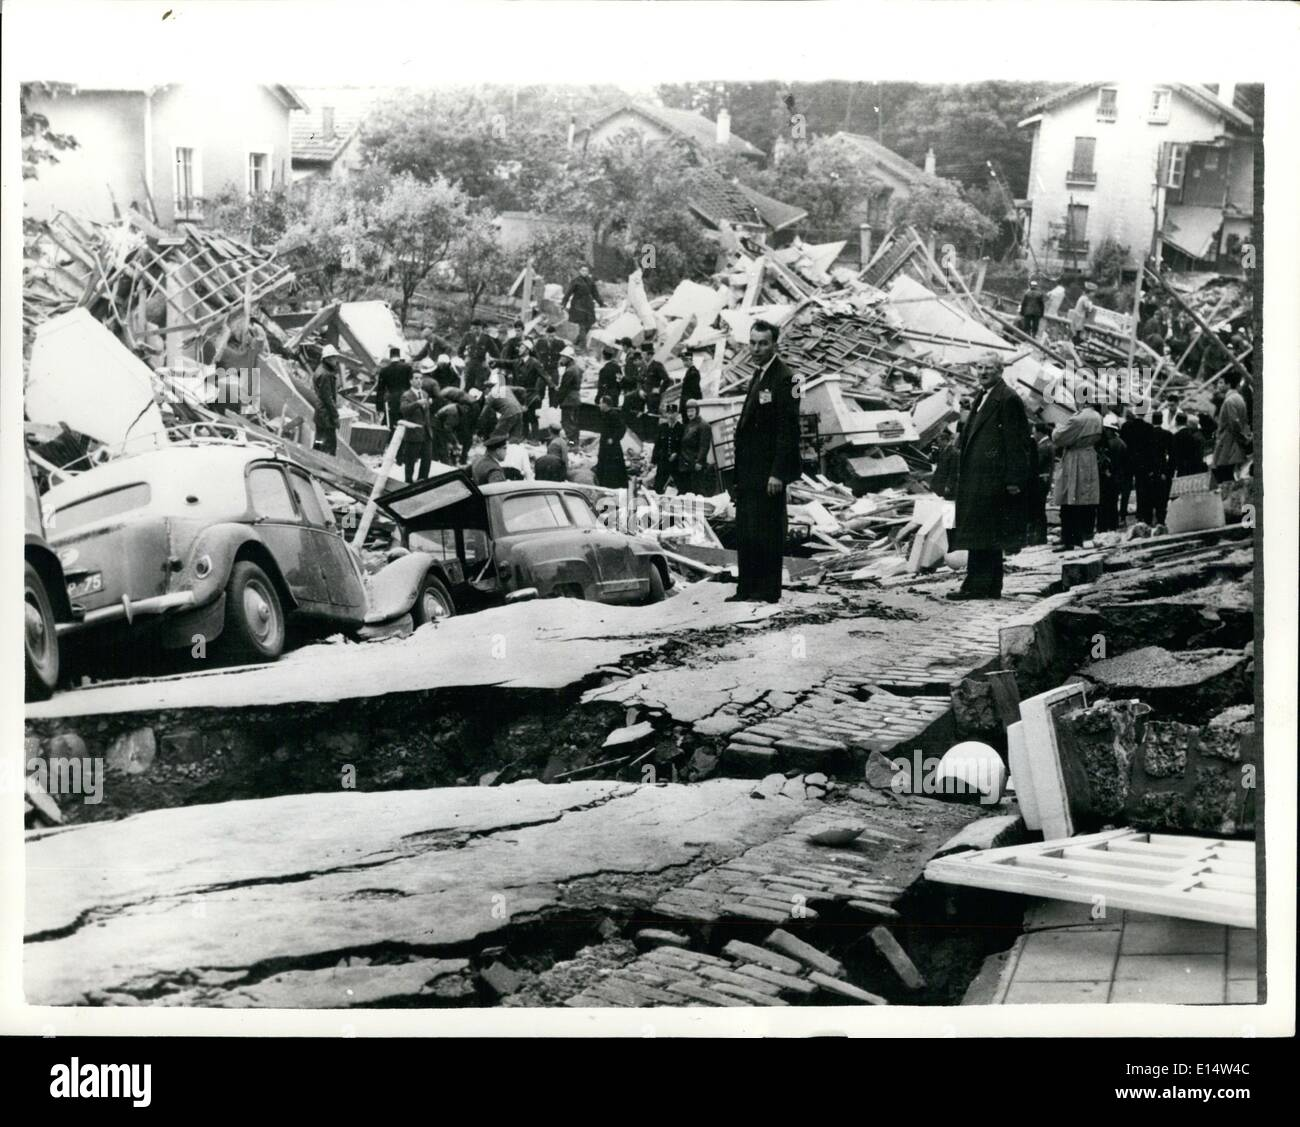 Apr. 18, 2012 - Seven killed In Landslide In Paris Suburb. Seven people were killed and 23 injured when half a square mile of the Paris suburb of Clamart subsided this morning, smashing 25 houses, a ceramics factory and a three-storey block of flats. About a dozen workers are believed to be buried alive in the factory ruins. Keystone Photo Shows:- Cars are seen on a collapsed roadway as rescue workers toil among the wreckage in the background - after today's disaster at Clamart. - Stock Image